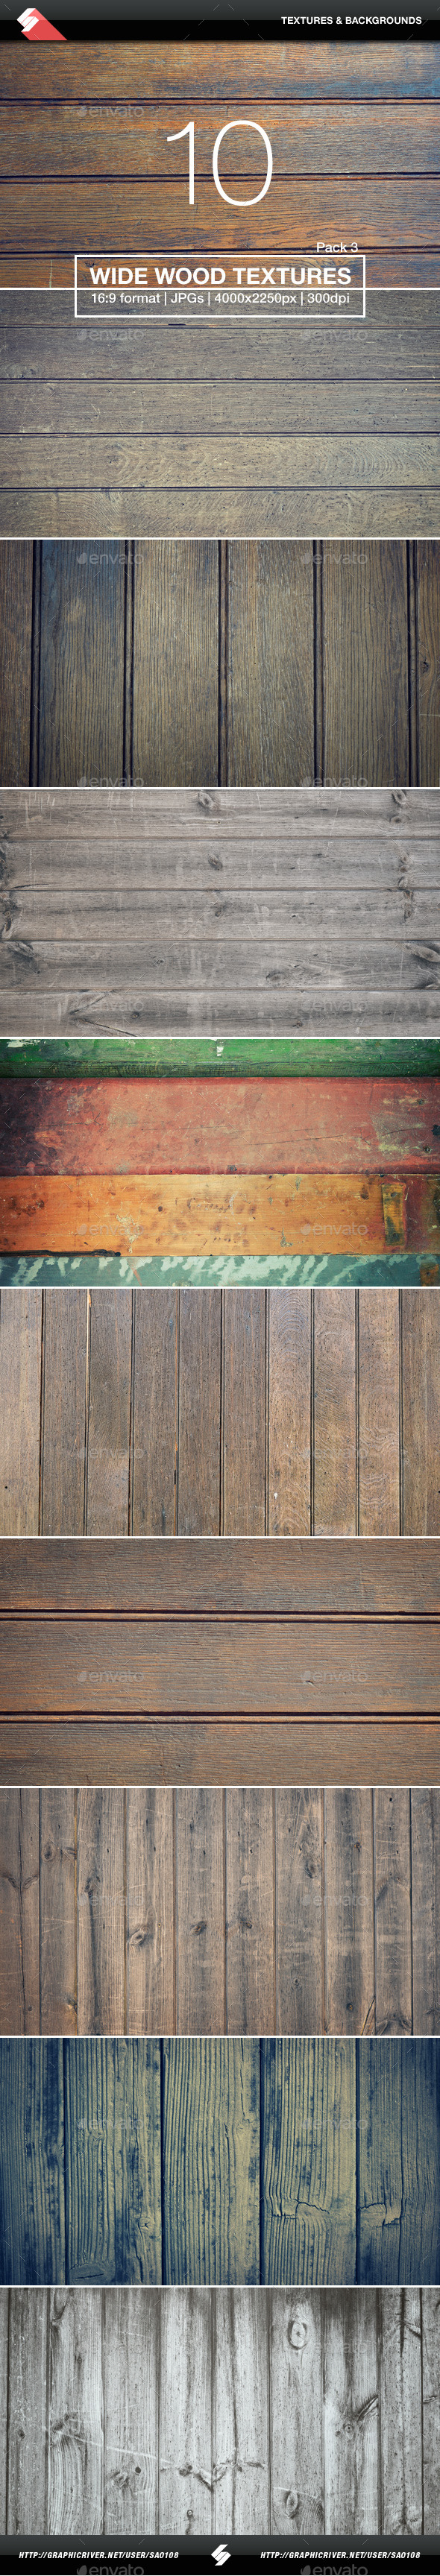 10 Wide Wood Textures 3 - Wooden Backgrounds - Wood Textures